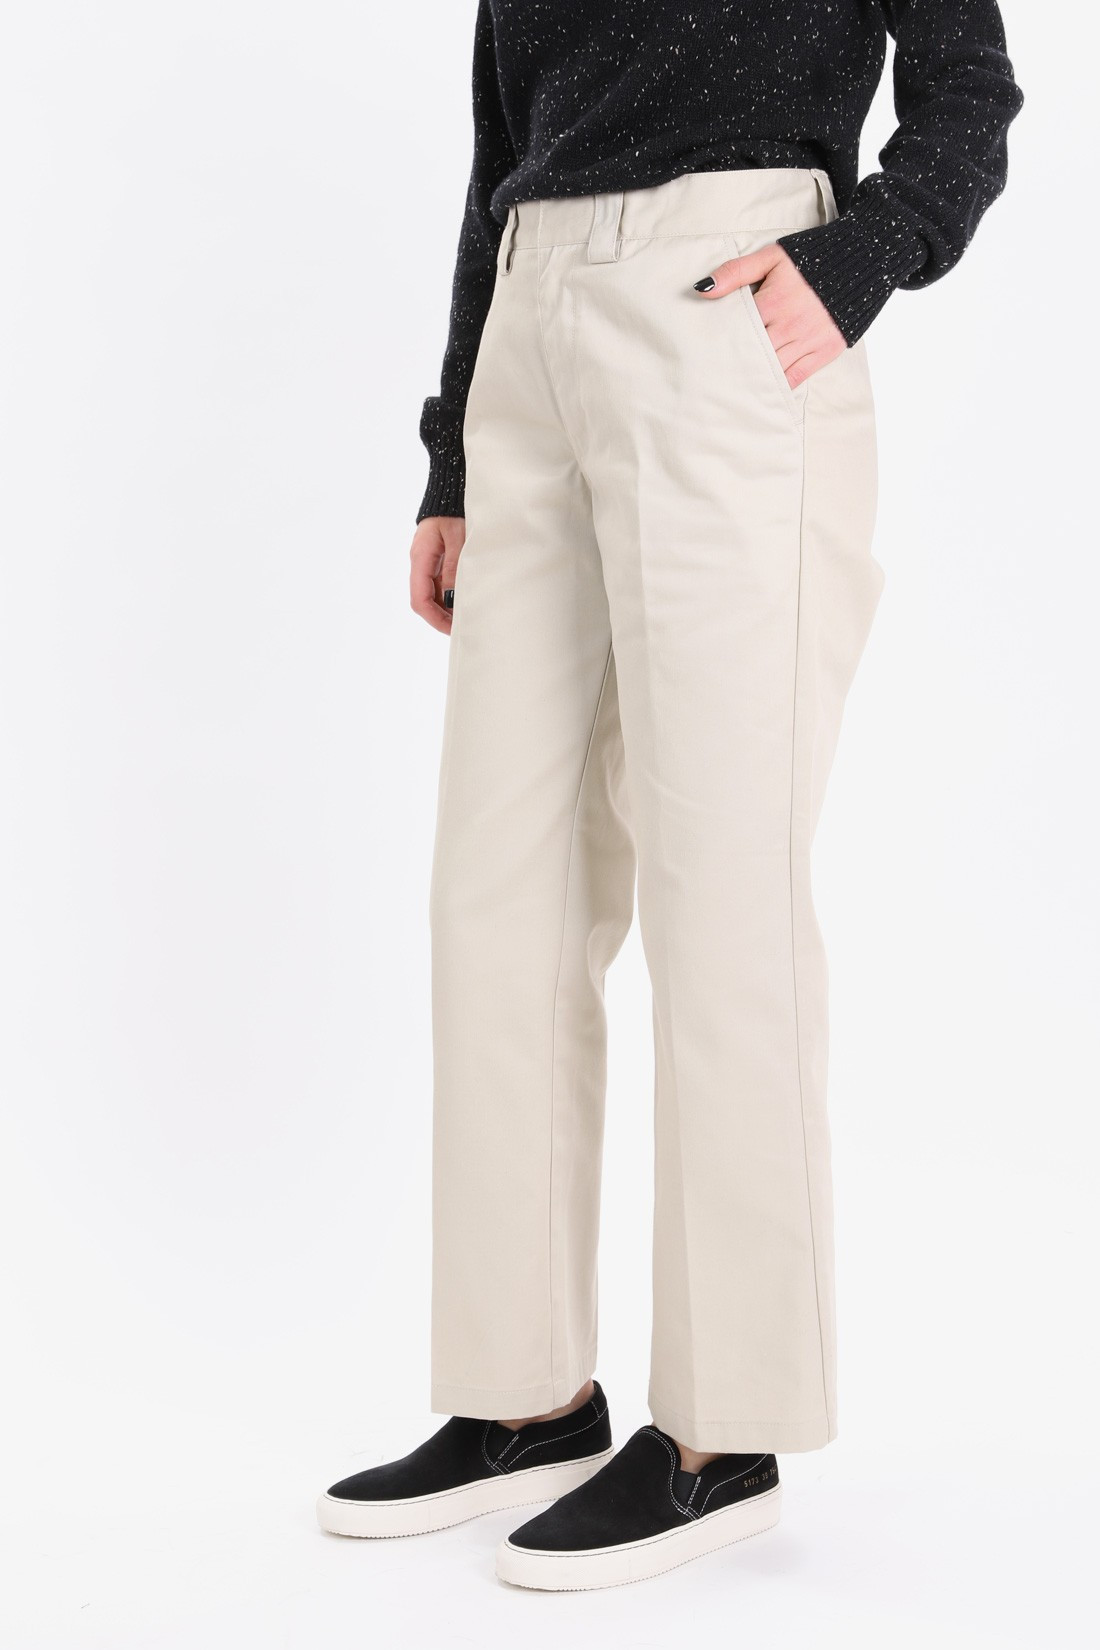 STUSSY FOR WOMAN / Reese wide pant Khaki